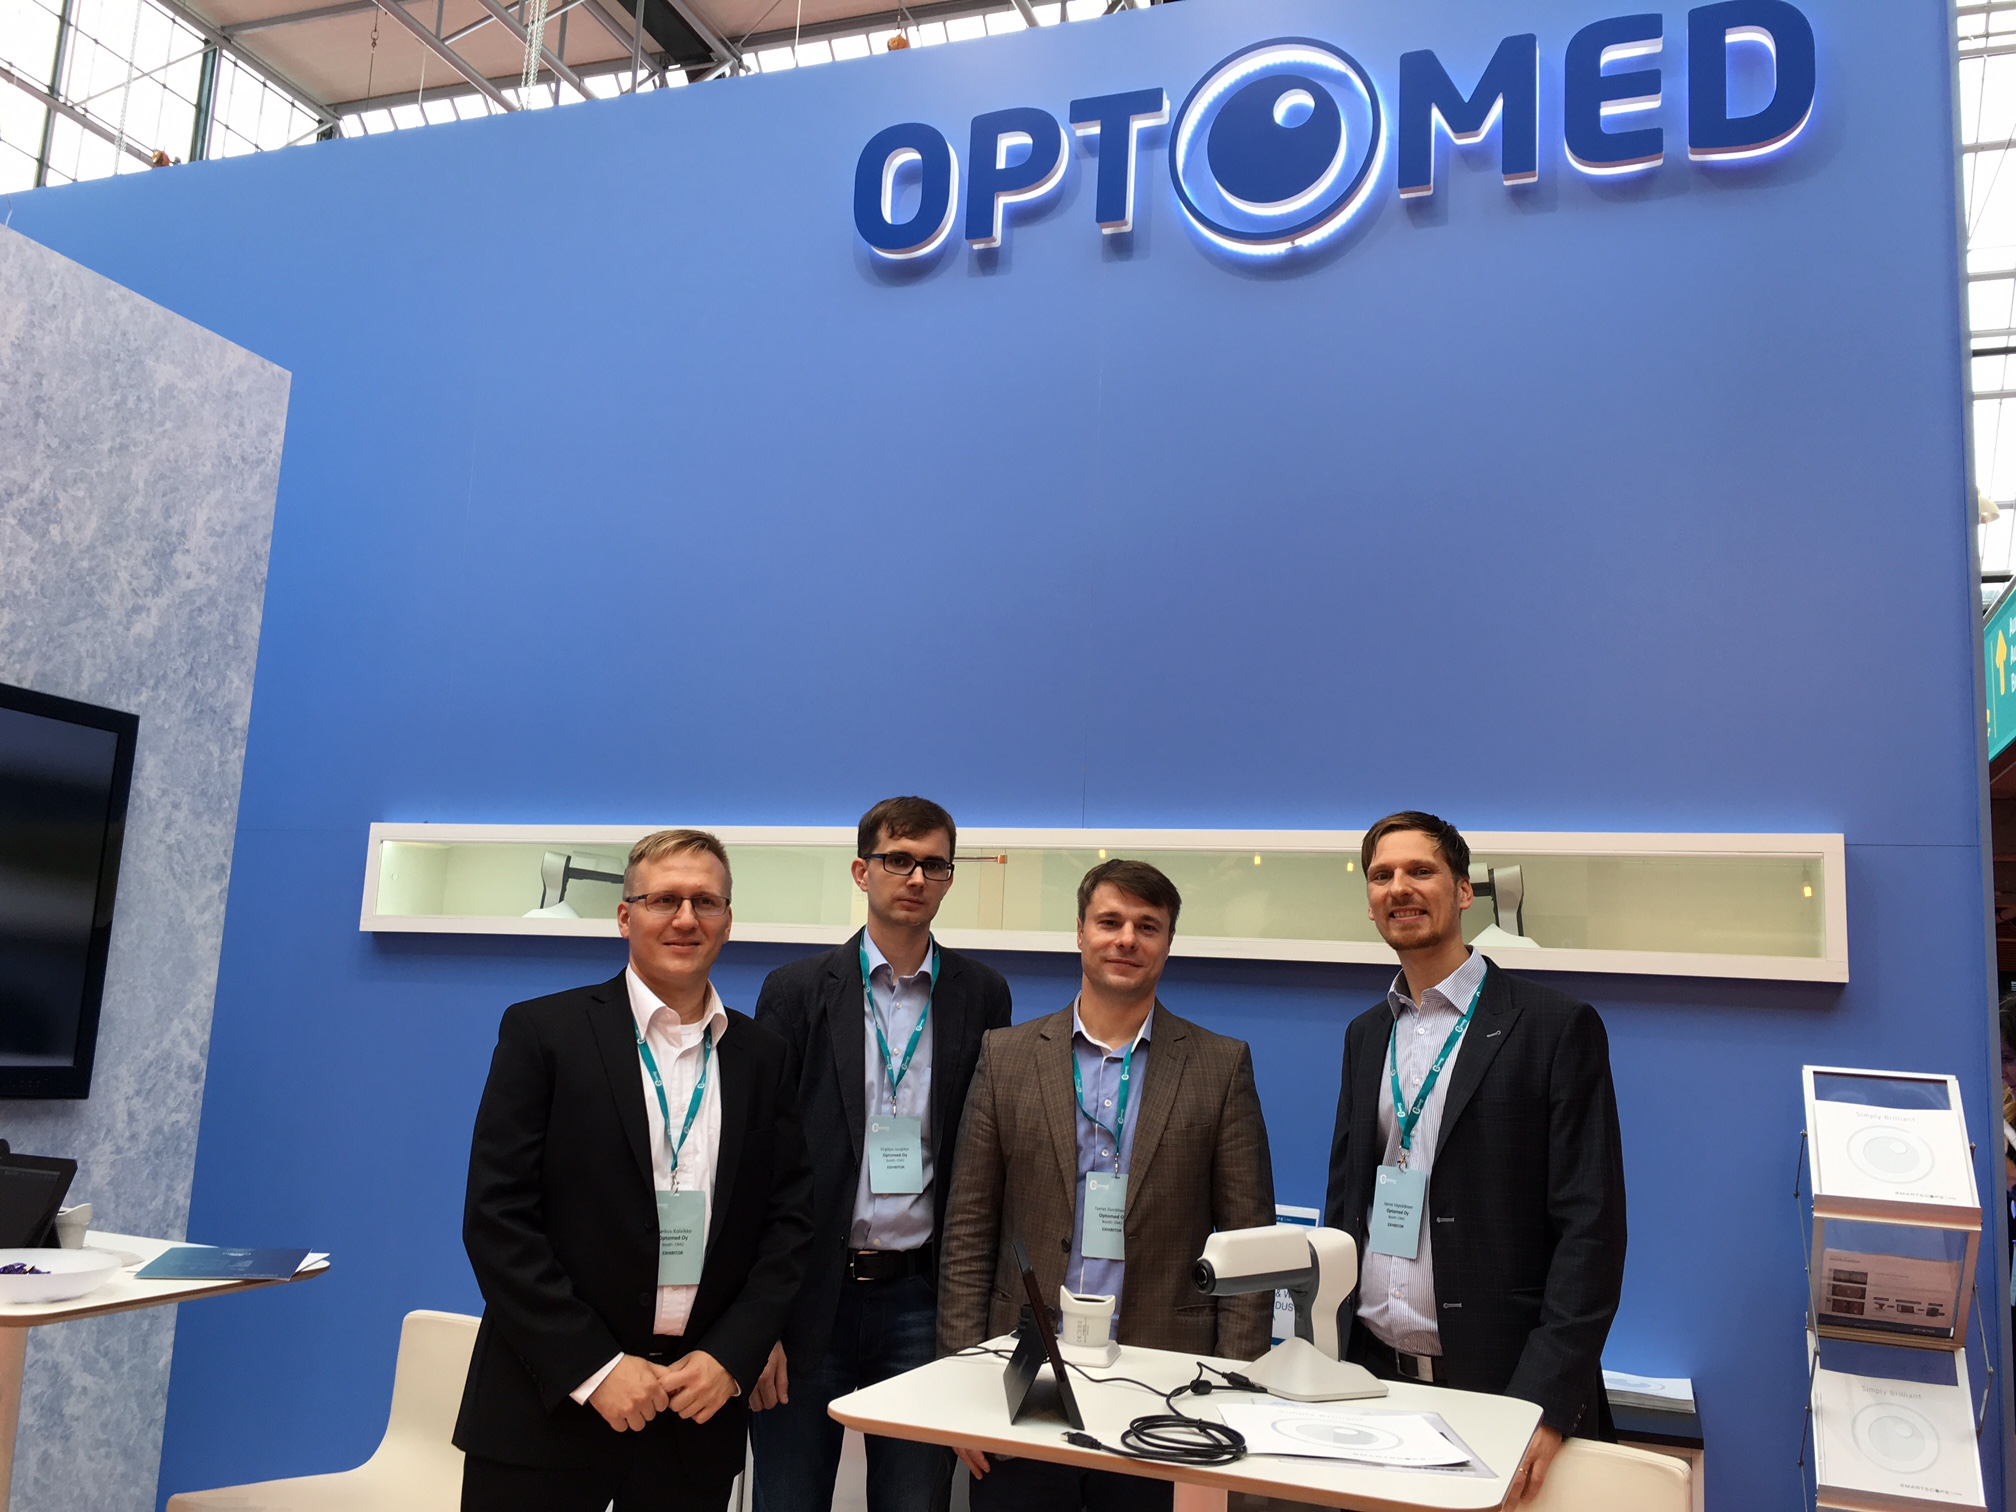 softneta ophthalmology solutions viewer